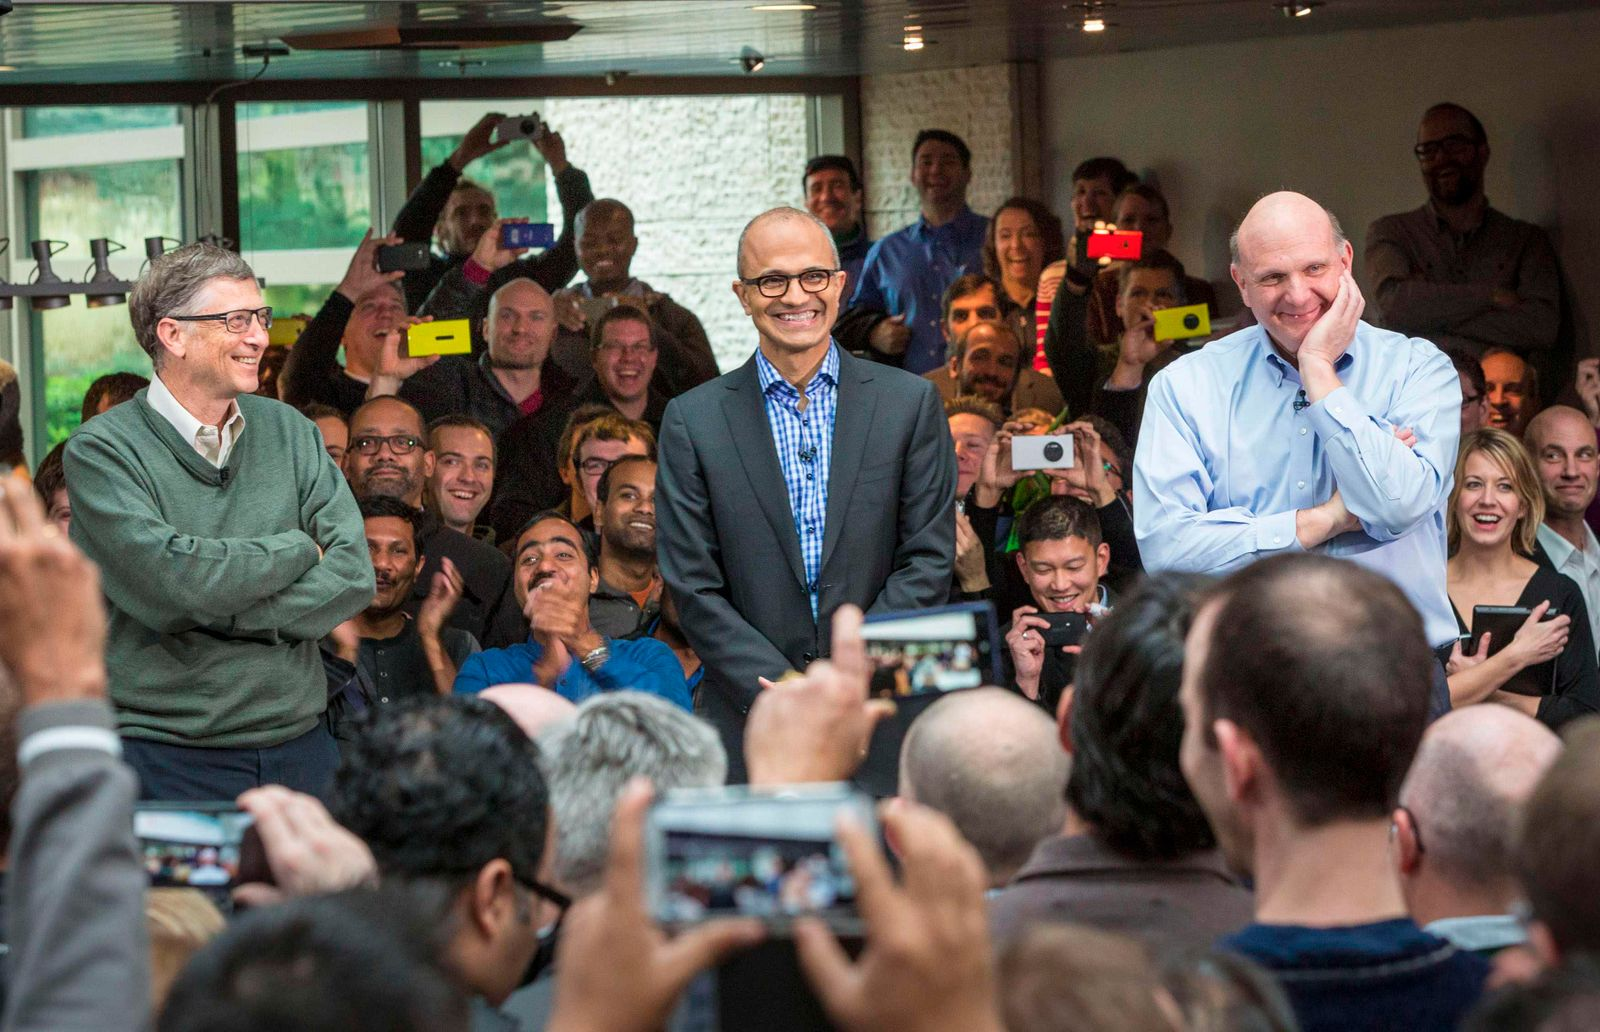 Handout photo of Satya Nadella, Microsoft's new CEO, addressing employees along with founder and technology advisor Bill Gates and outgoing CEO Steve Ballmer on the company's campus in Redmond